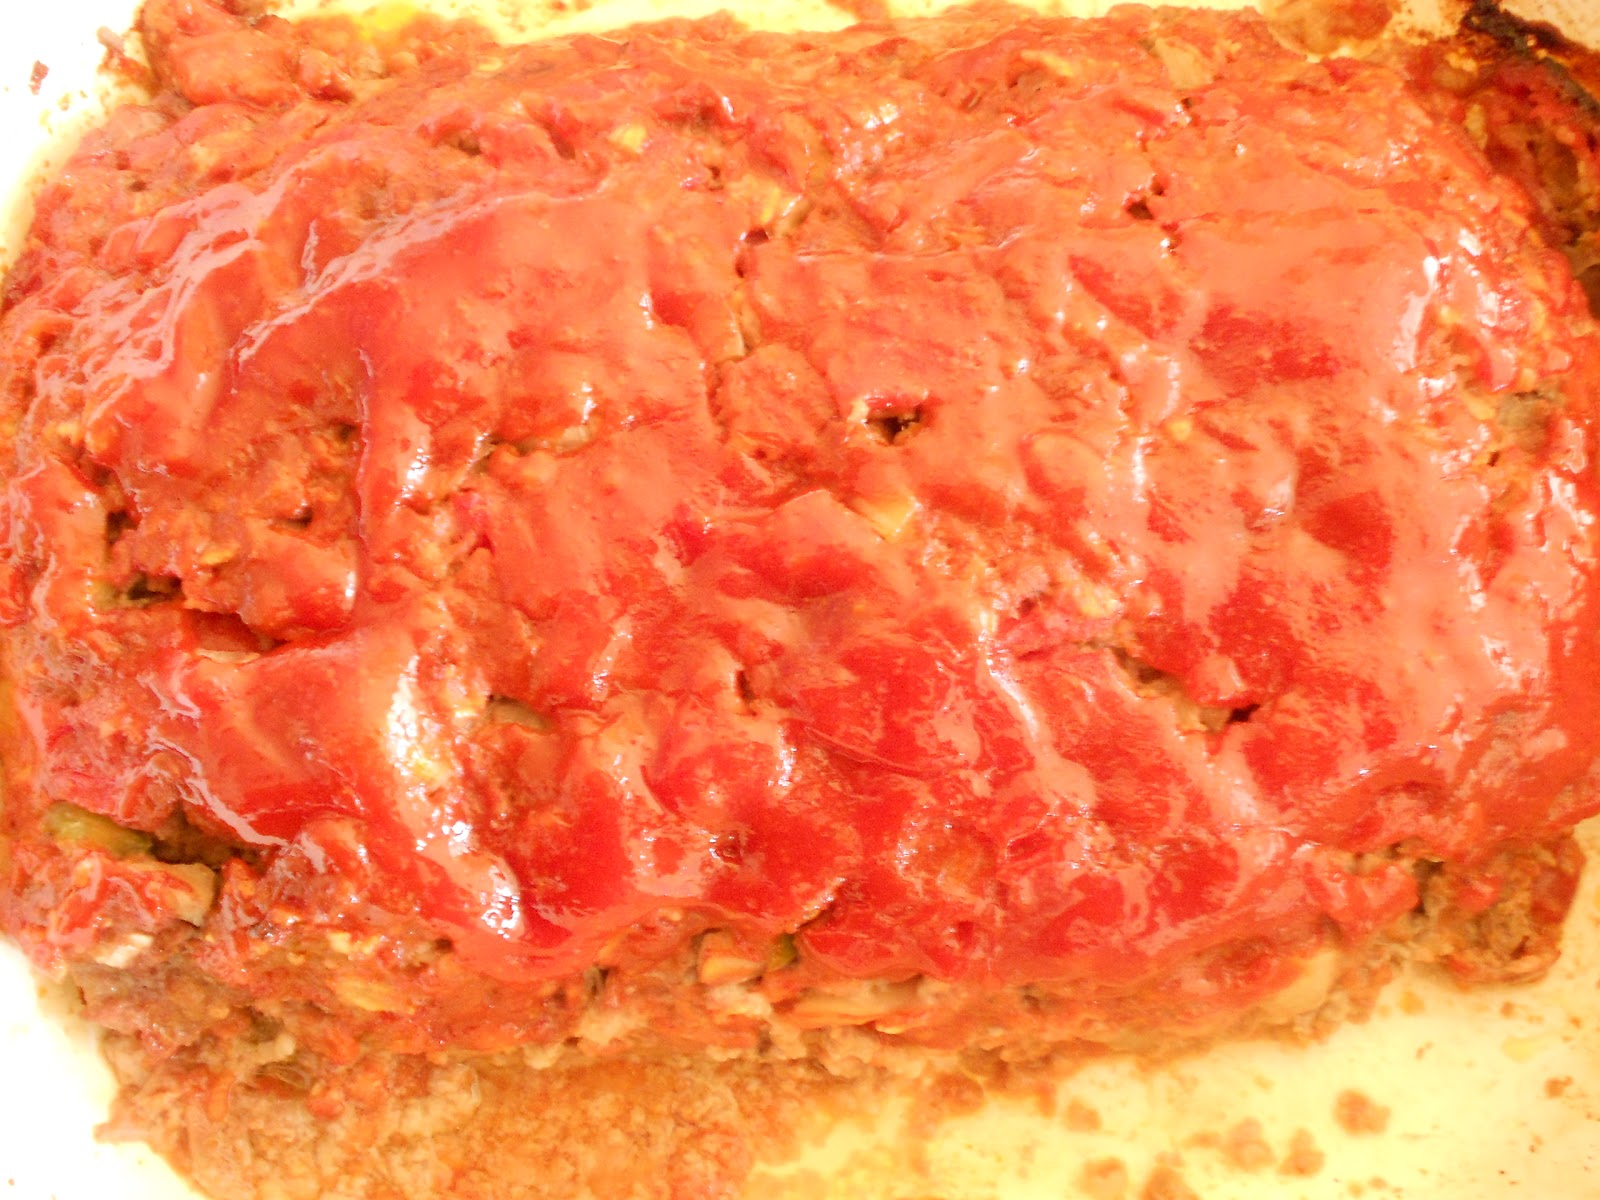 The Pub and Grub Forum: Paula Deen's Basic Meatloaf